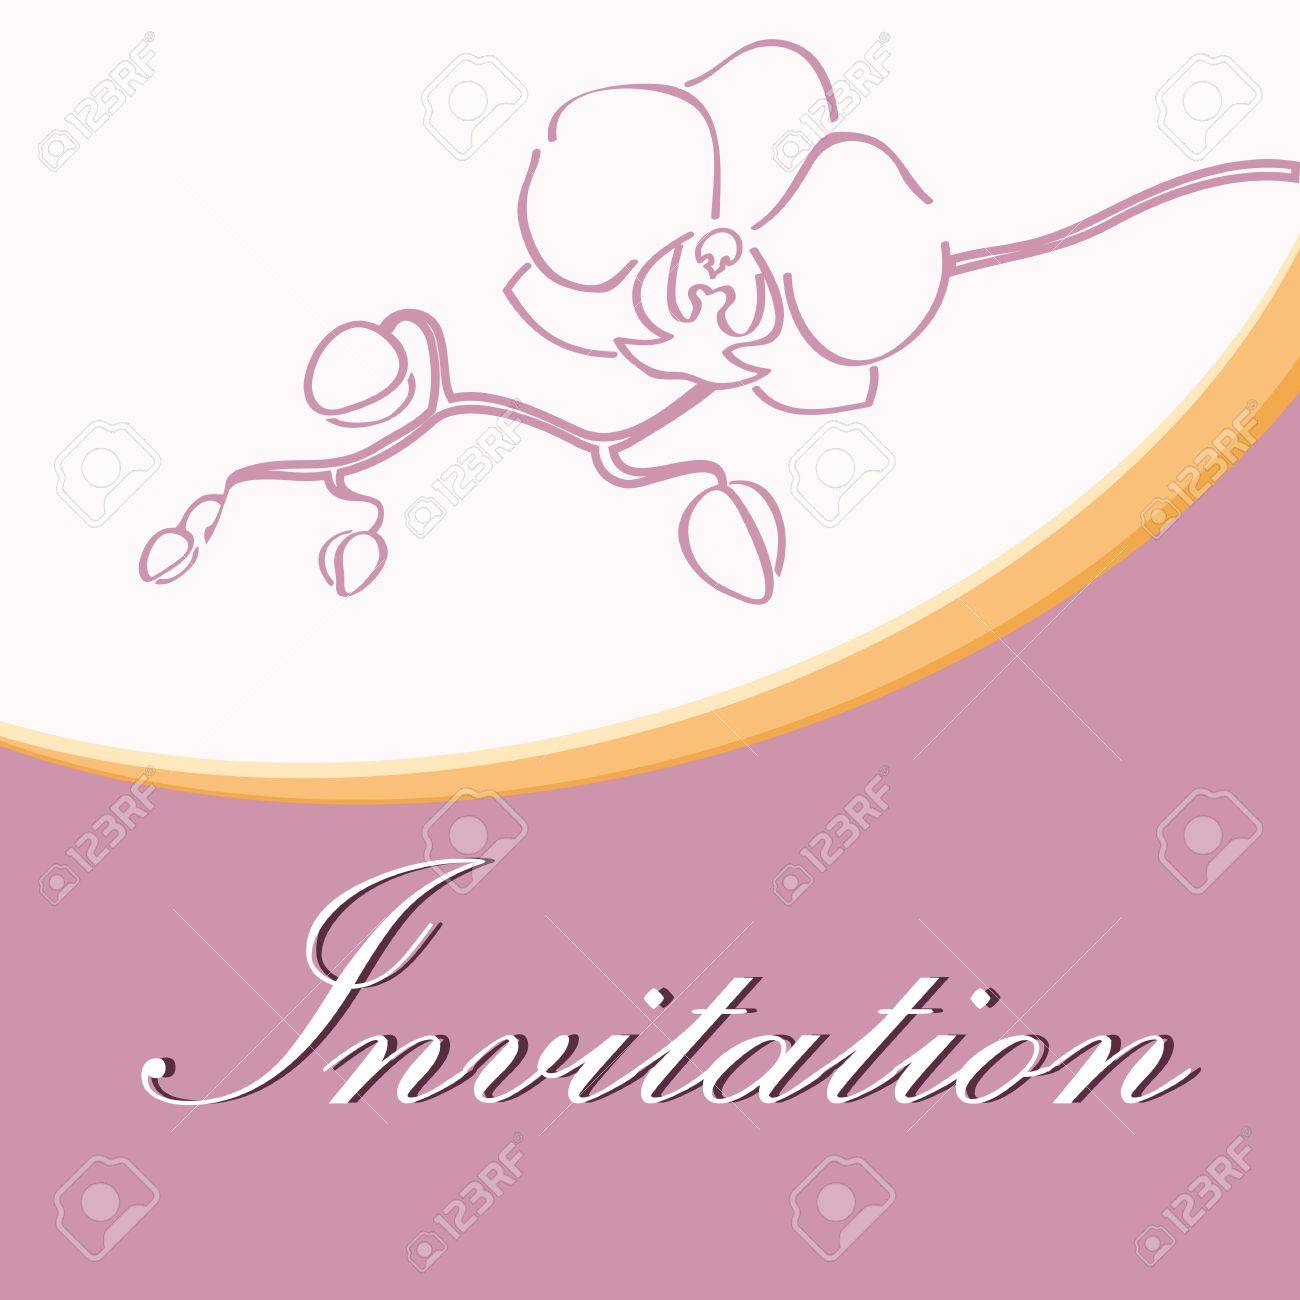 Wedding Invitation With Orchid Silhouette Royalty Free Cliparts ...